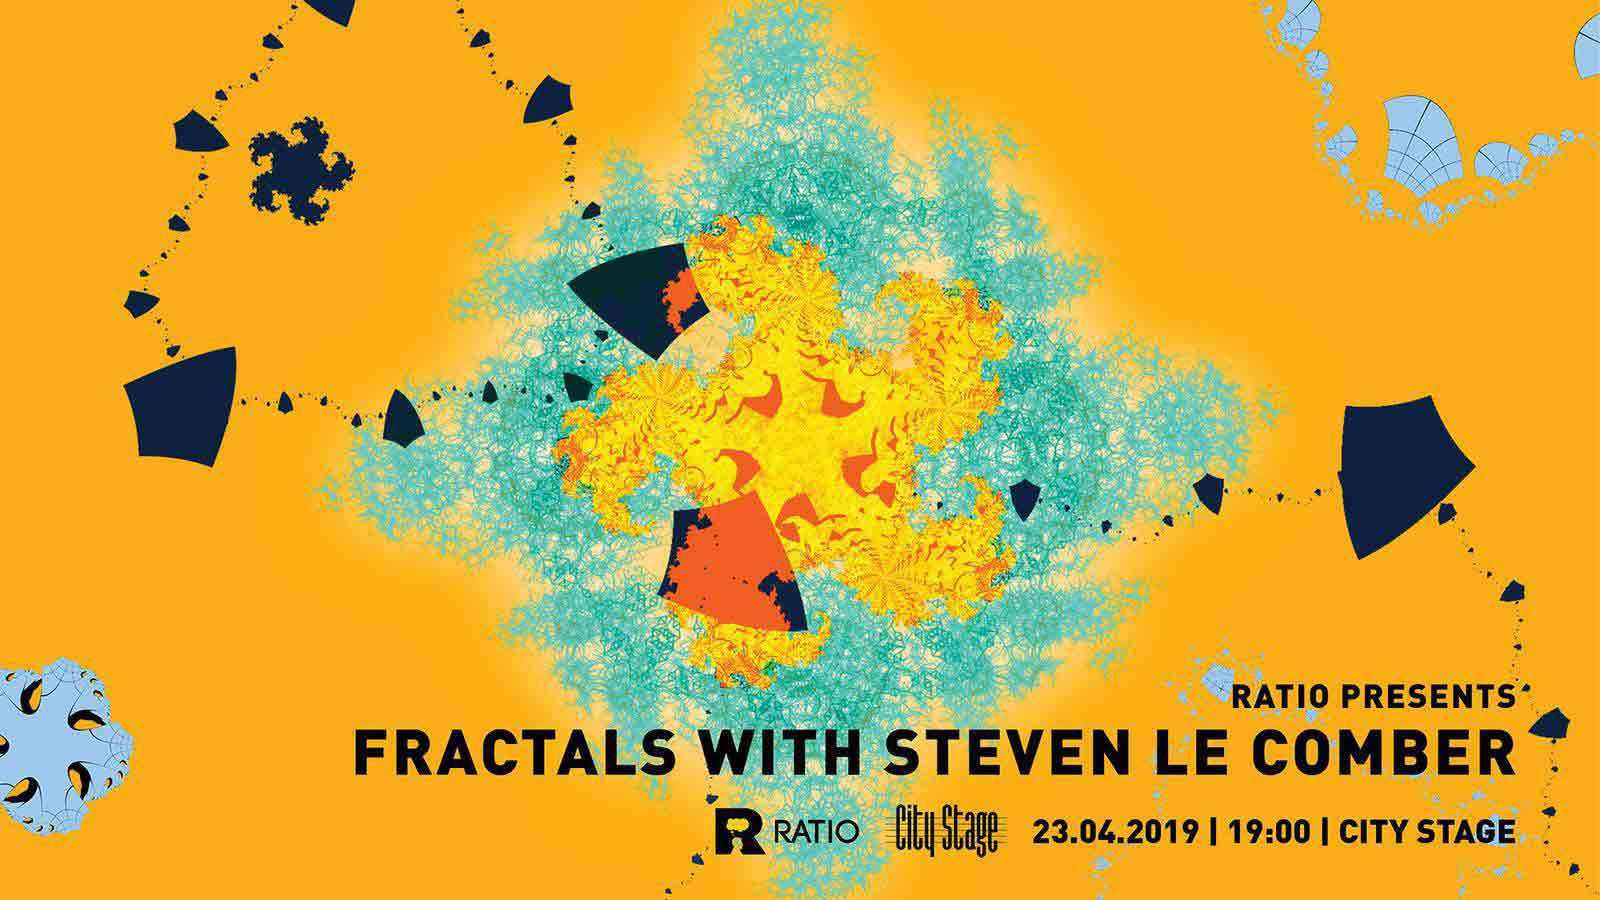 23 април 2019 г. 19:00 ч. City Stage | Ratio presents: Fractals with Steven Le Comber